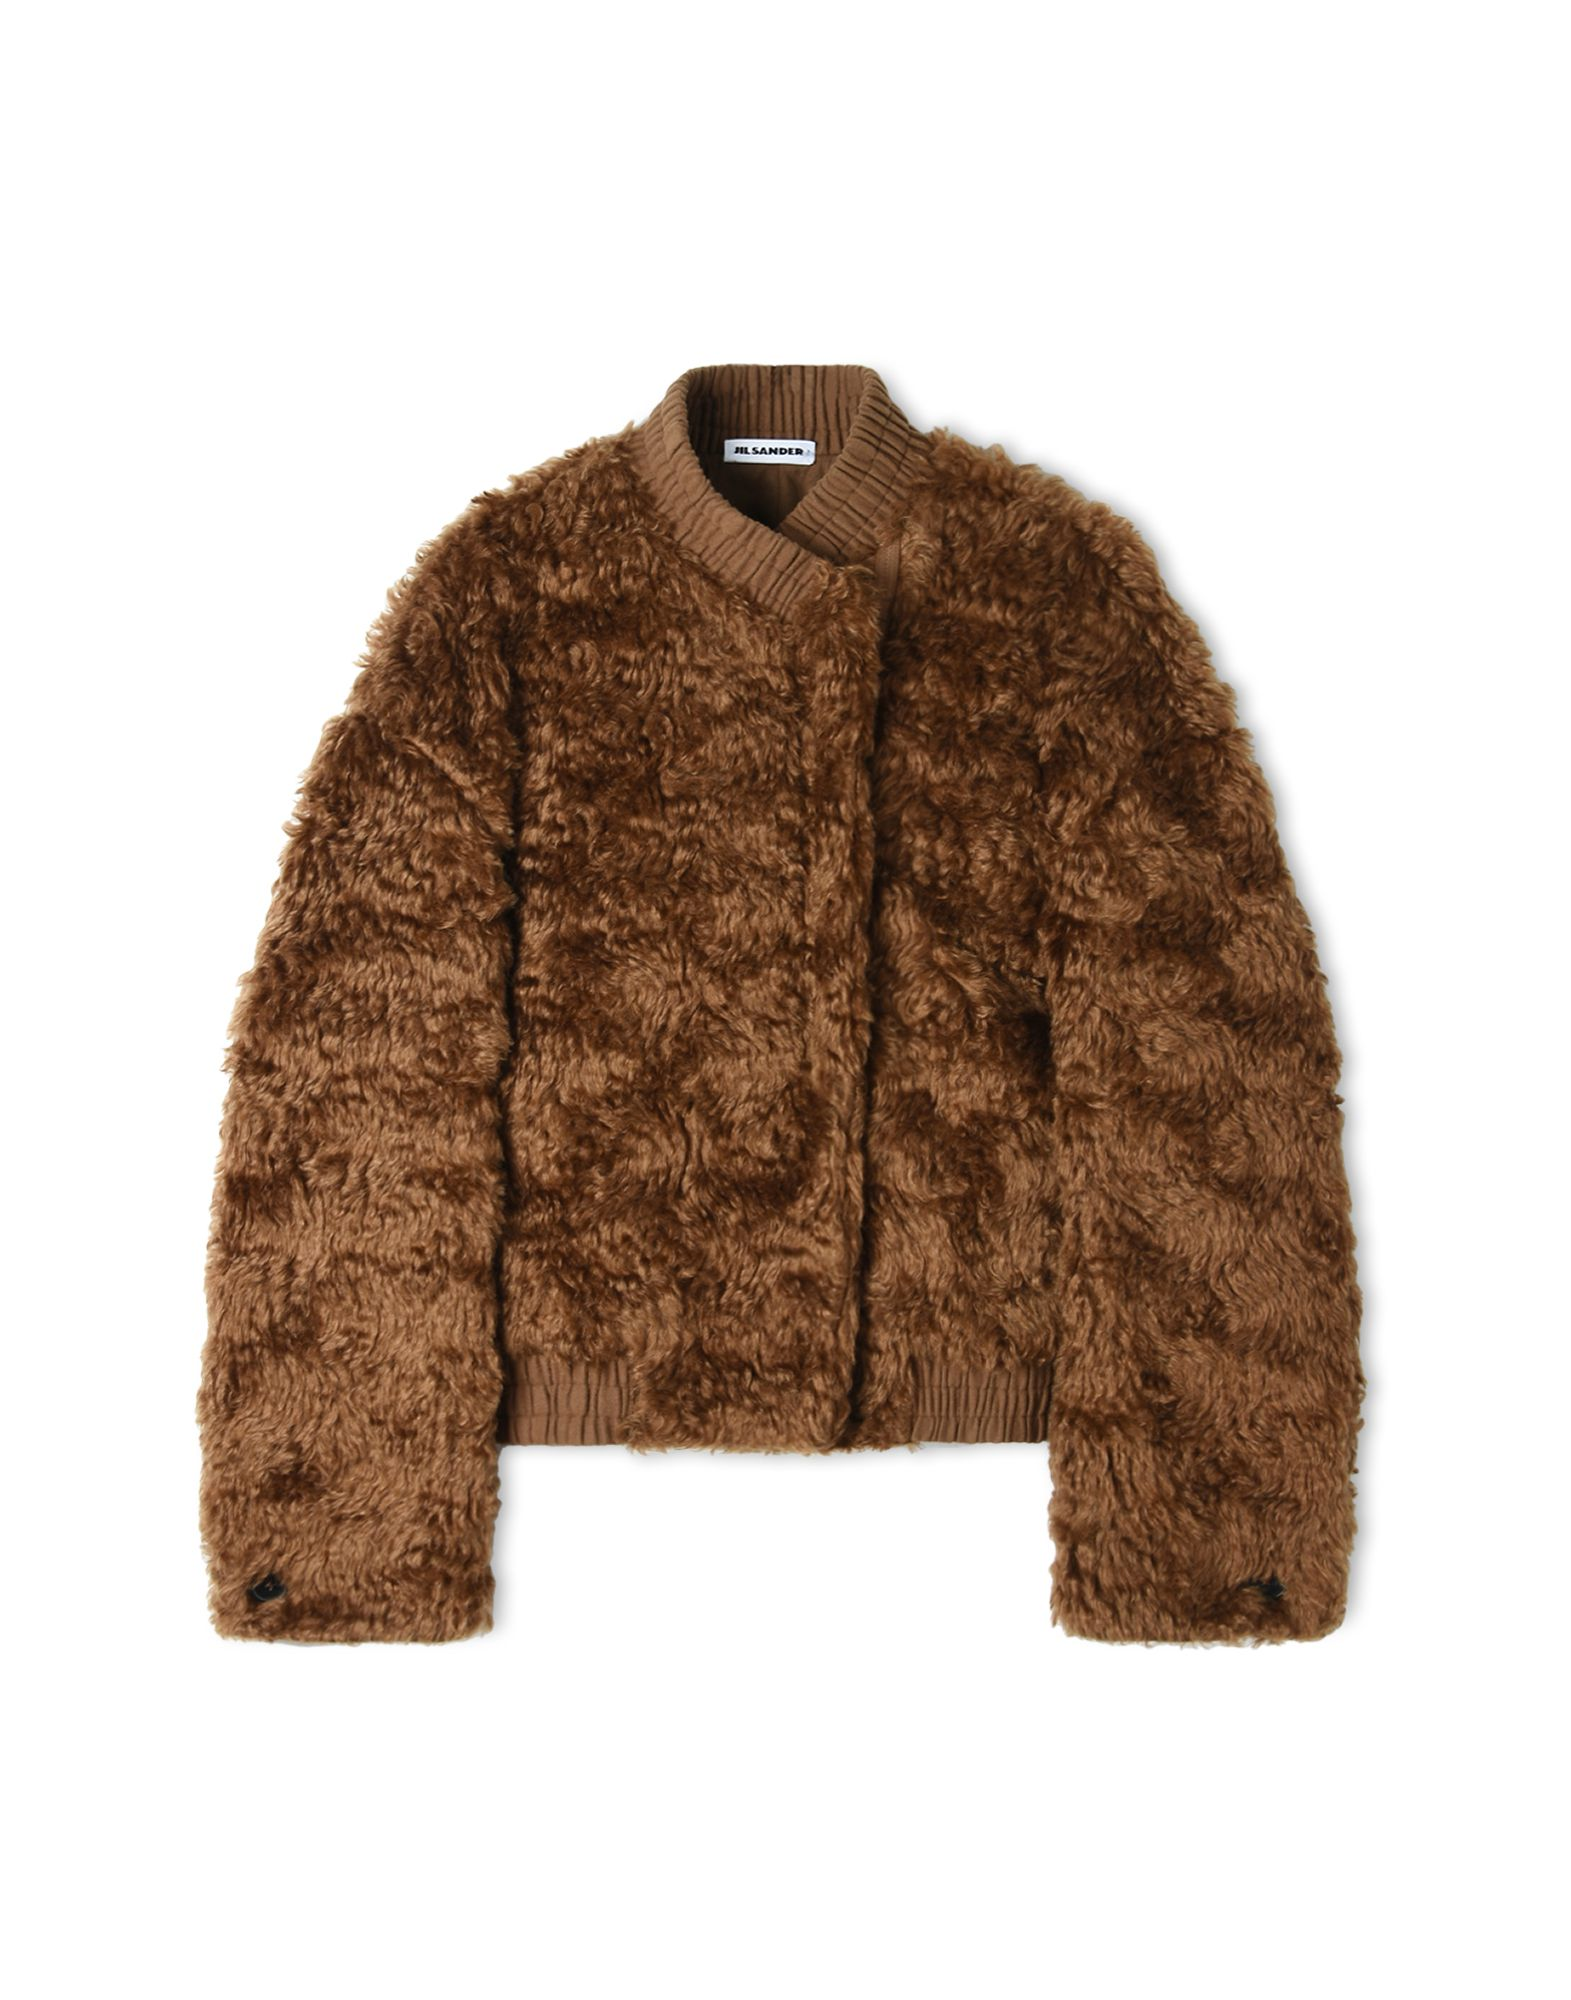 Mohair And Cotton-Blend Jacket in Camel from Jil Sander